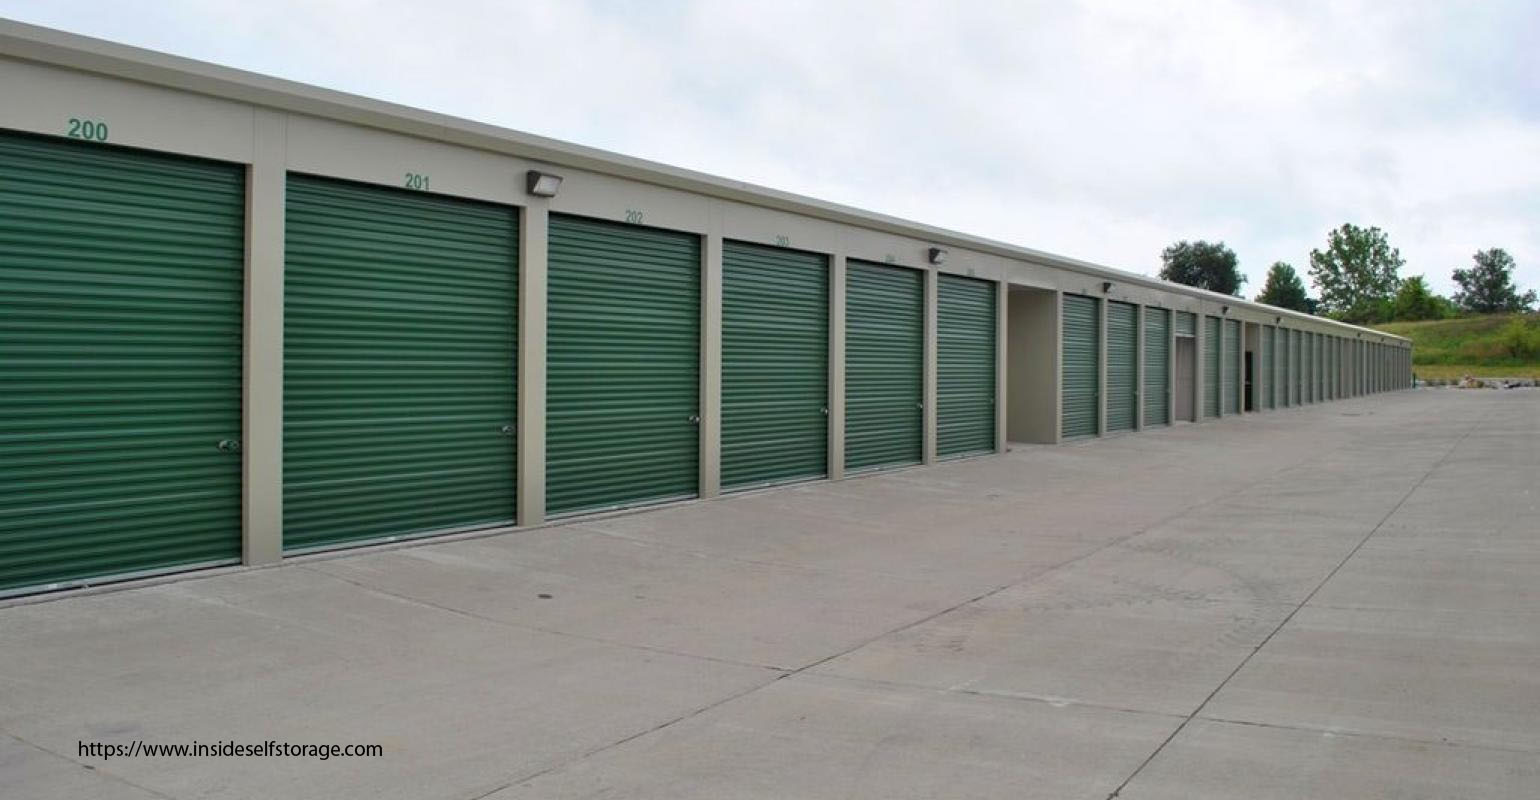 Getting Climate Controlled Storage Unit